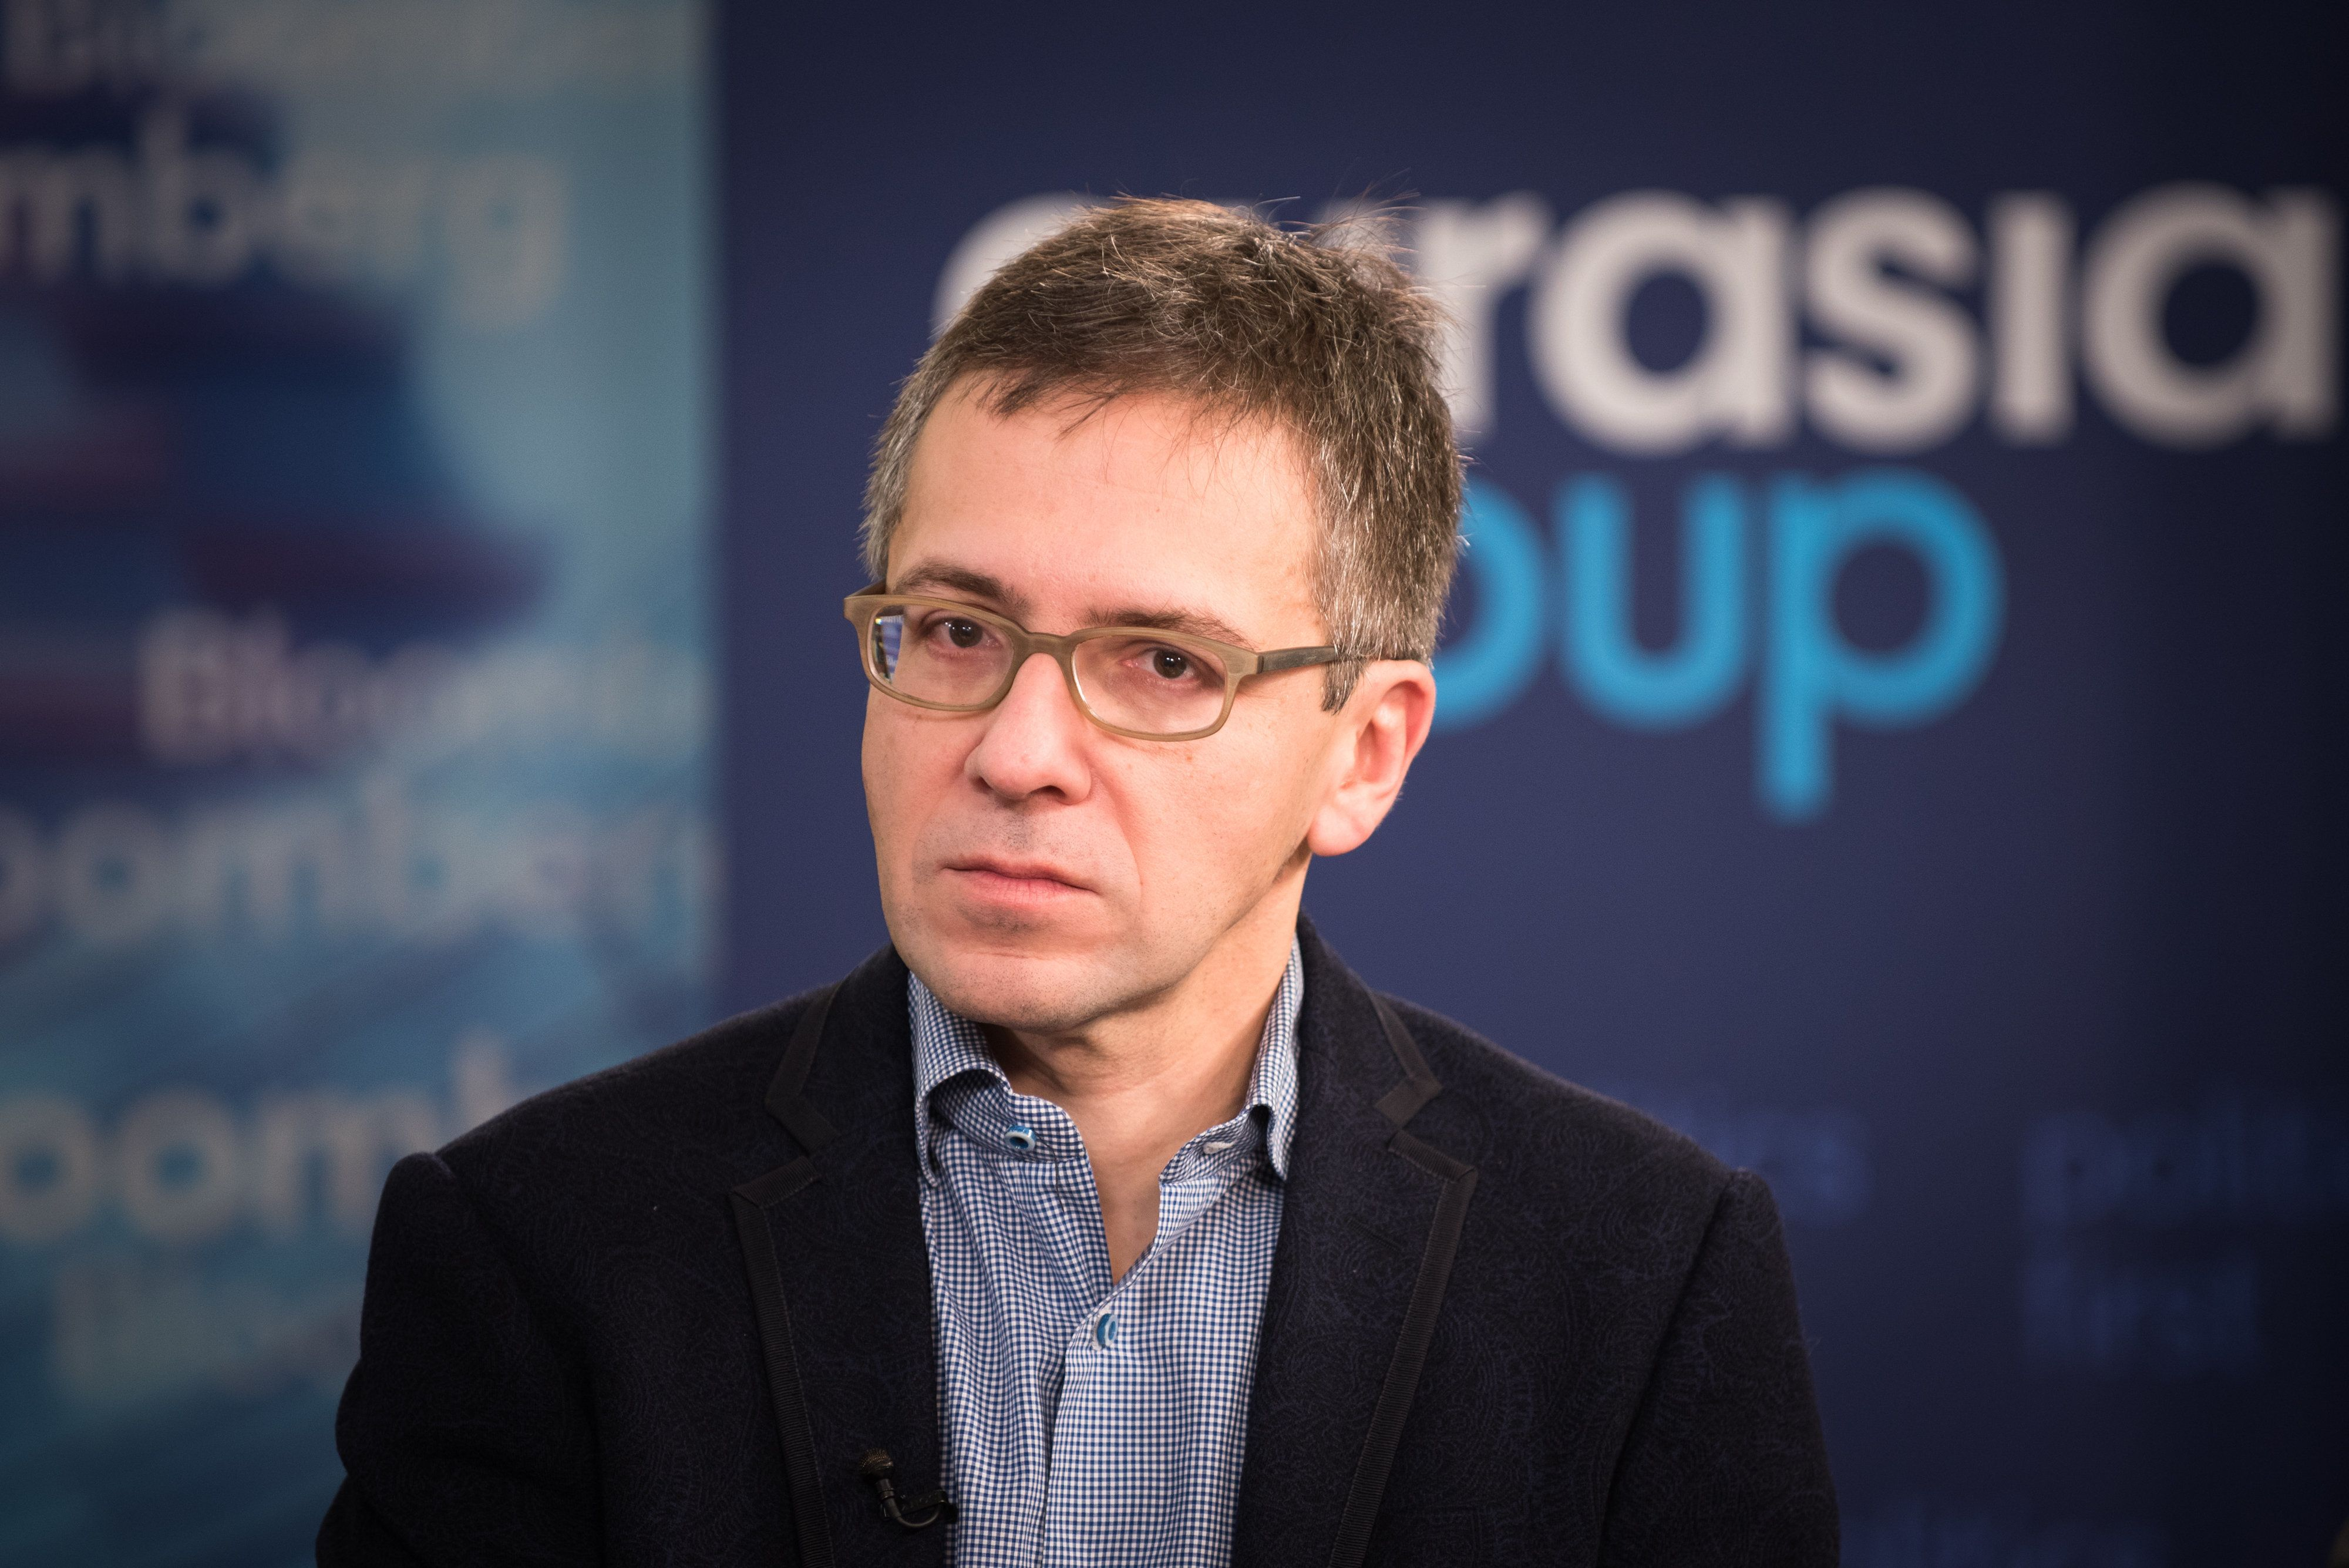 Ian Bremmer, president and founder of Eurasia Group Ltd., listens during a Bloomberg Television interview at the company's office in New York, U.S., on Tuesday, Jan. 3, 2017. Bremmer discussed the need for increased investment by corporate America to spur U.S. Economic growth. Photographer: kholood Eid/Bloomberg via Getty Images